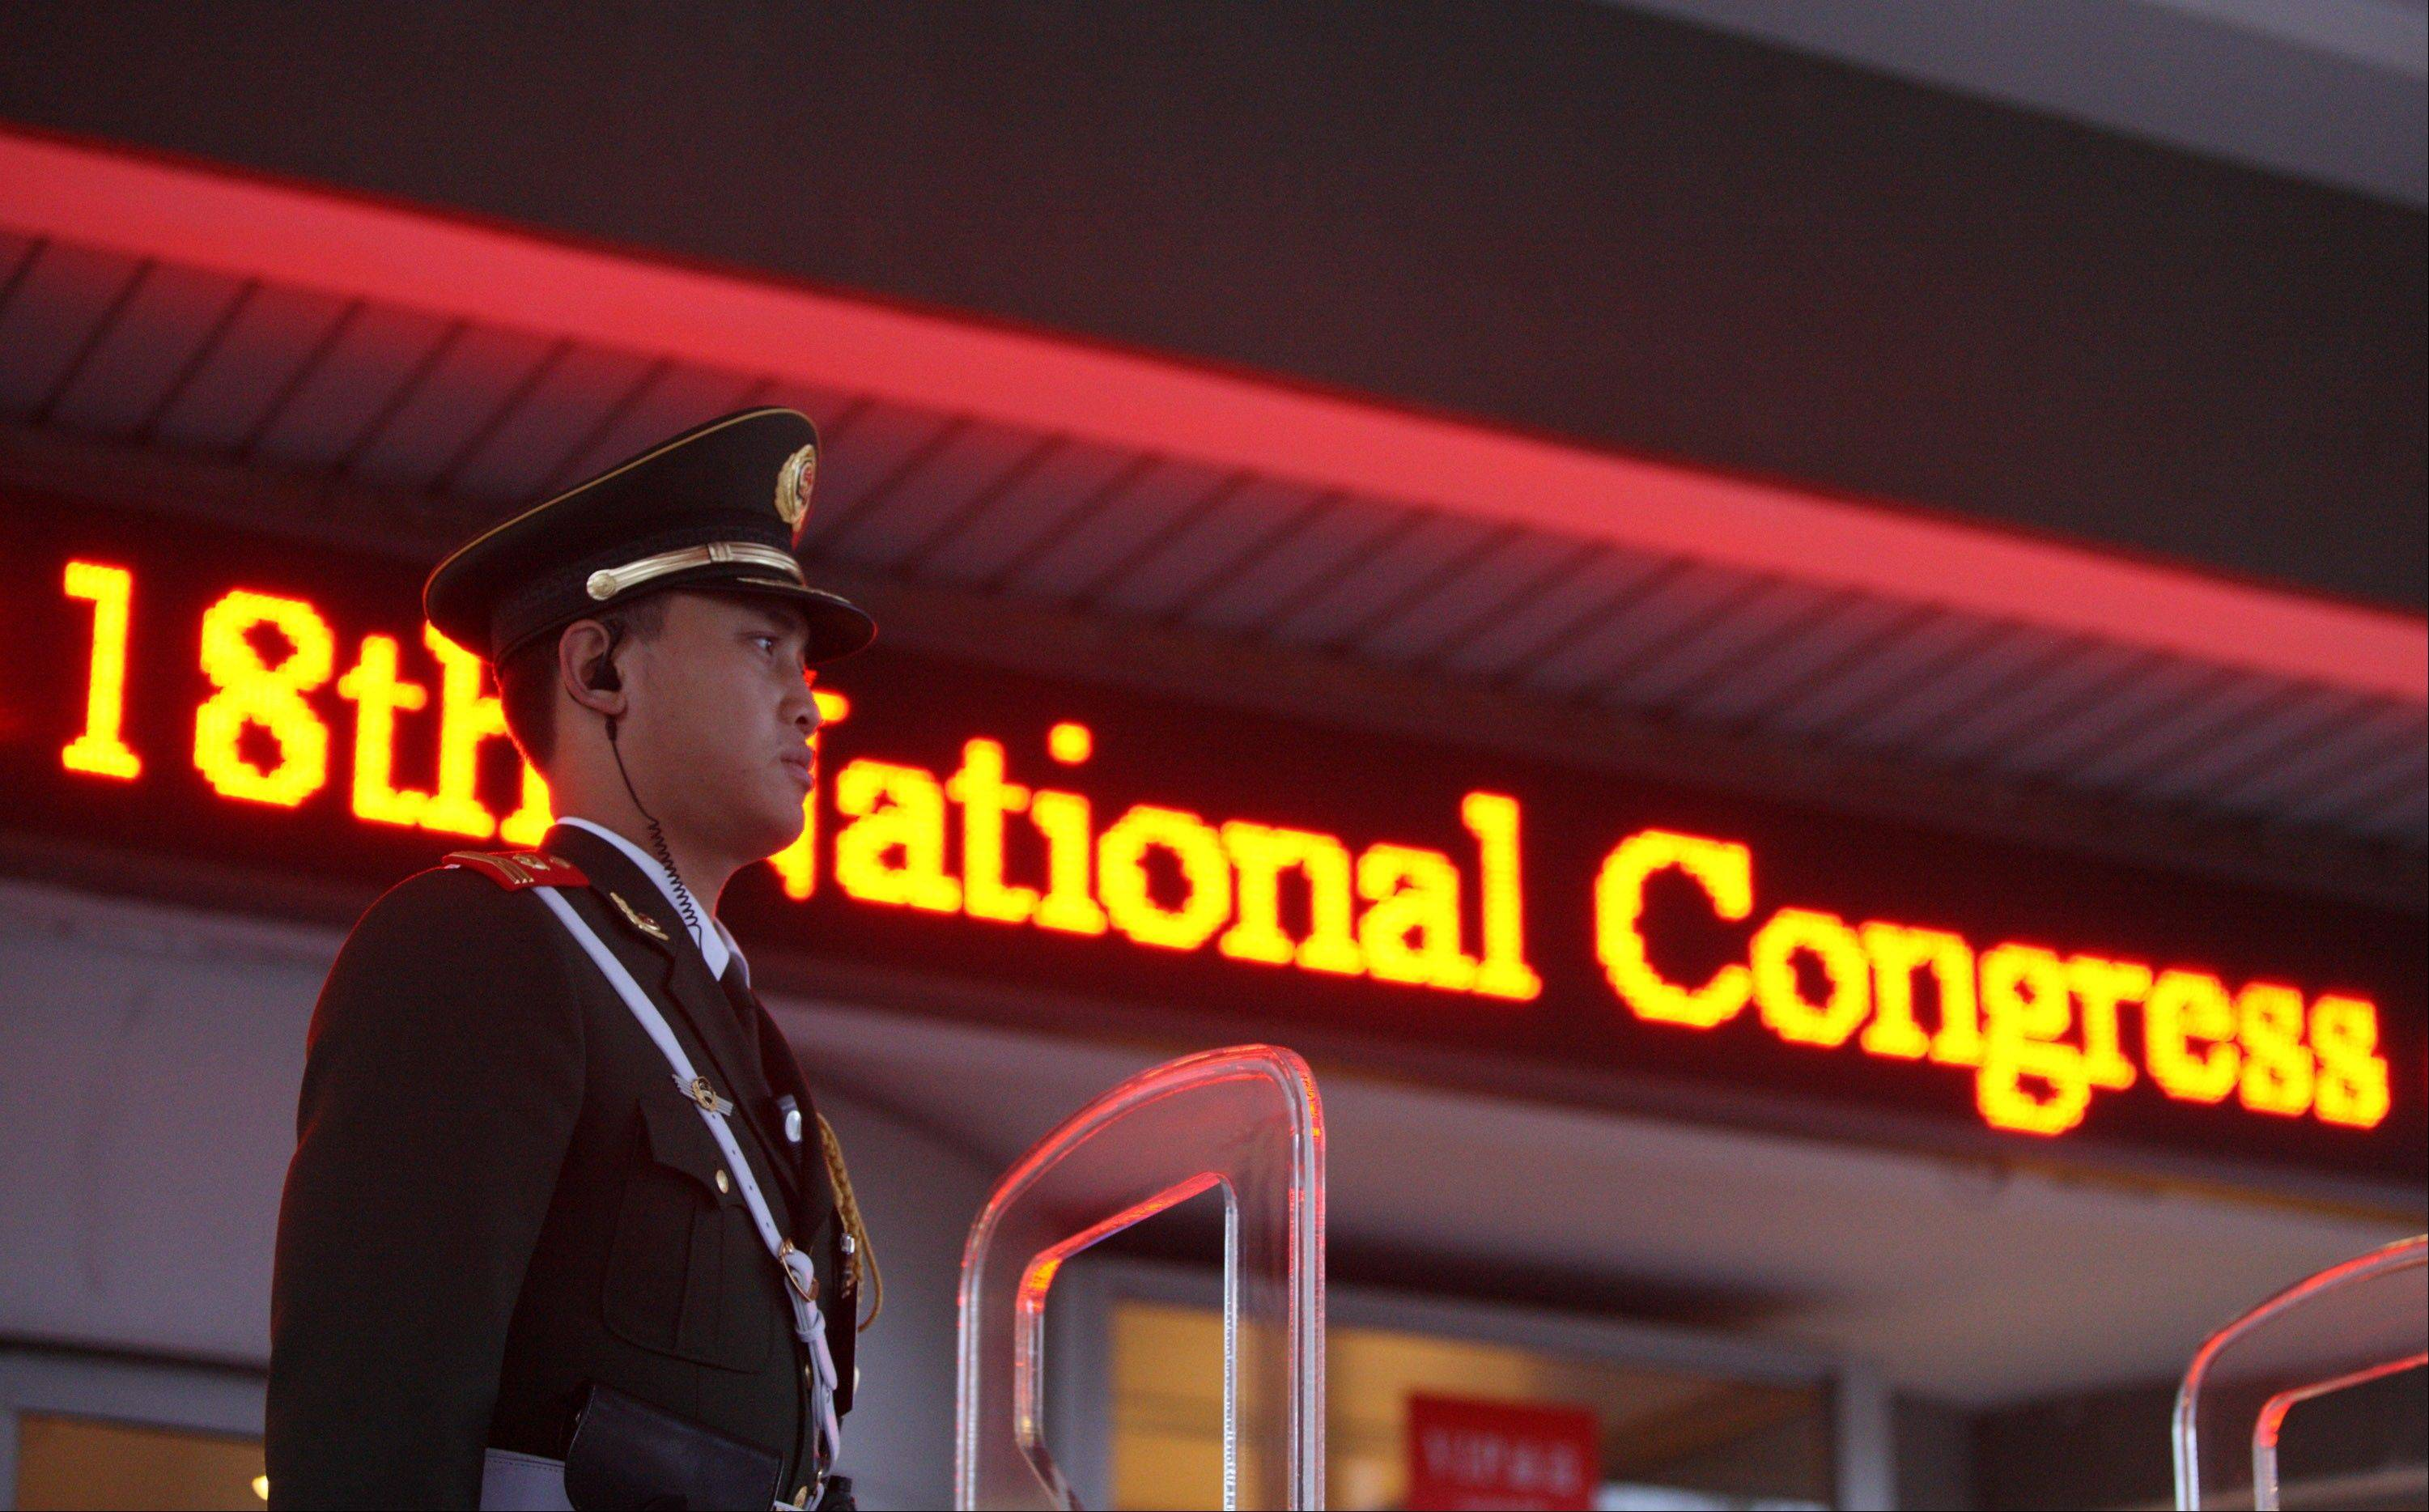 A security guard stands outside the media center for the 18th National Congress of the Communist Party of China in Beijing, China, on Wednesday, Nov. 7, 2012. China�s Vice President Xi Jinping was appointed the secretary general of the 18th Chinese Communist Party Congress, spokesman Cai Mingzhao said at a briefing today.